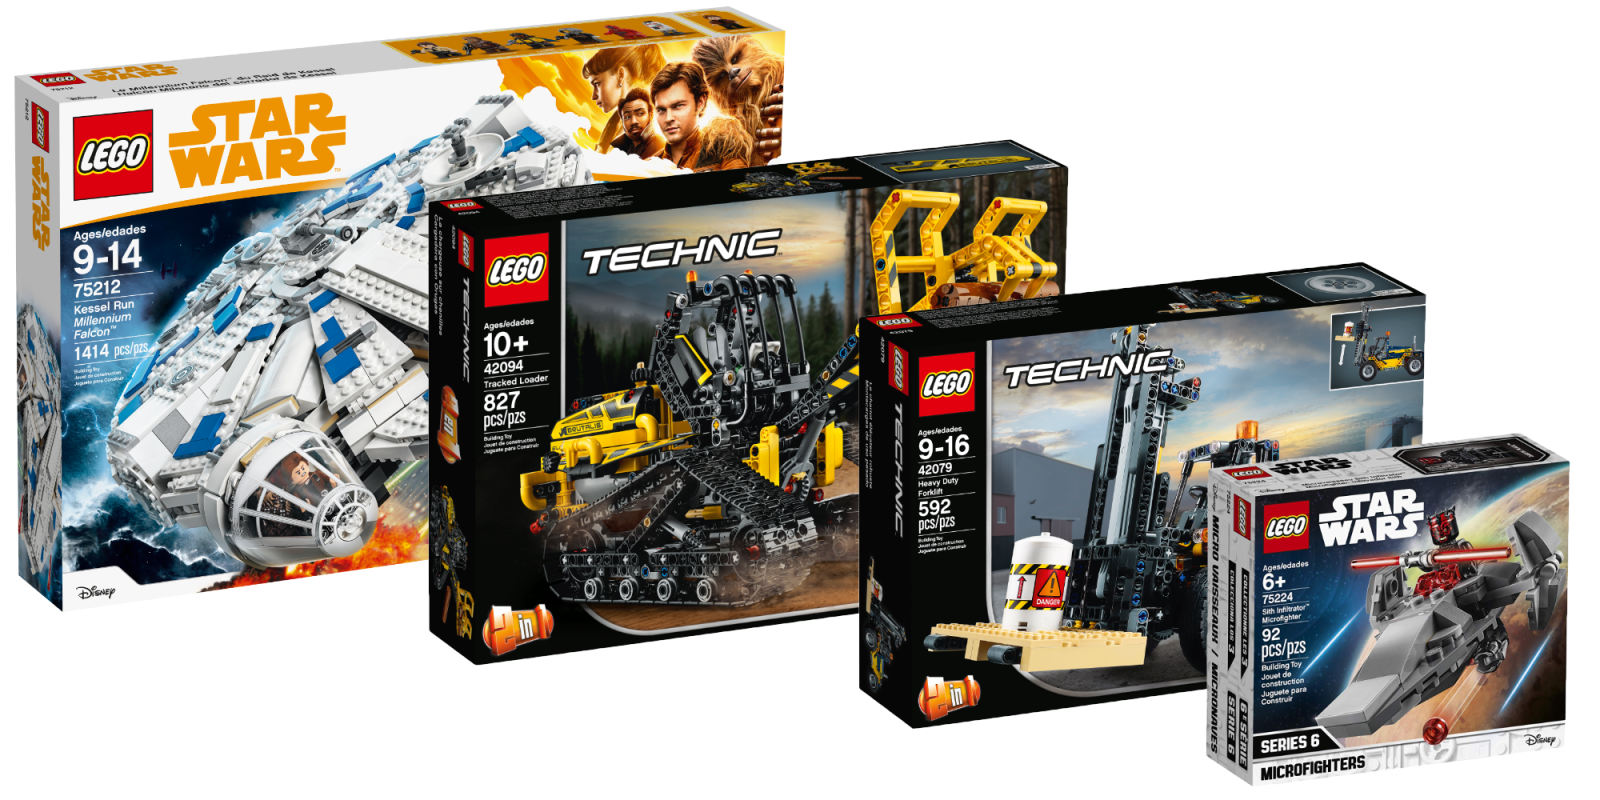 Assemble notable savings on LEGO Star Wars, Technic, Jurassic World sets and more from $7